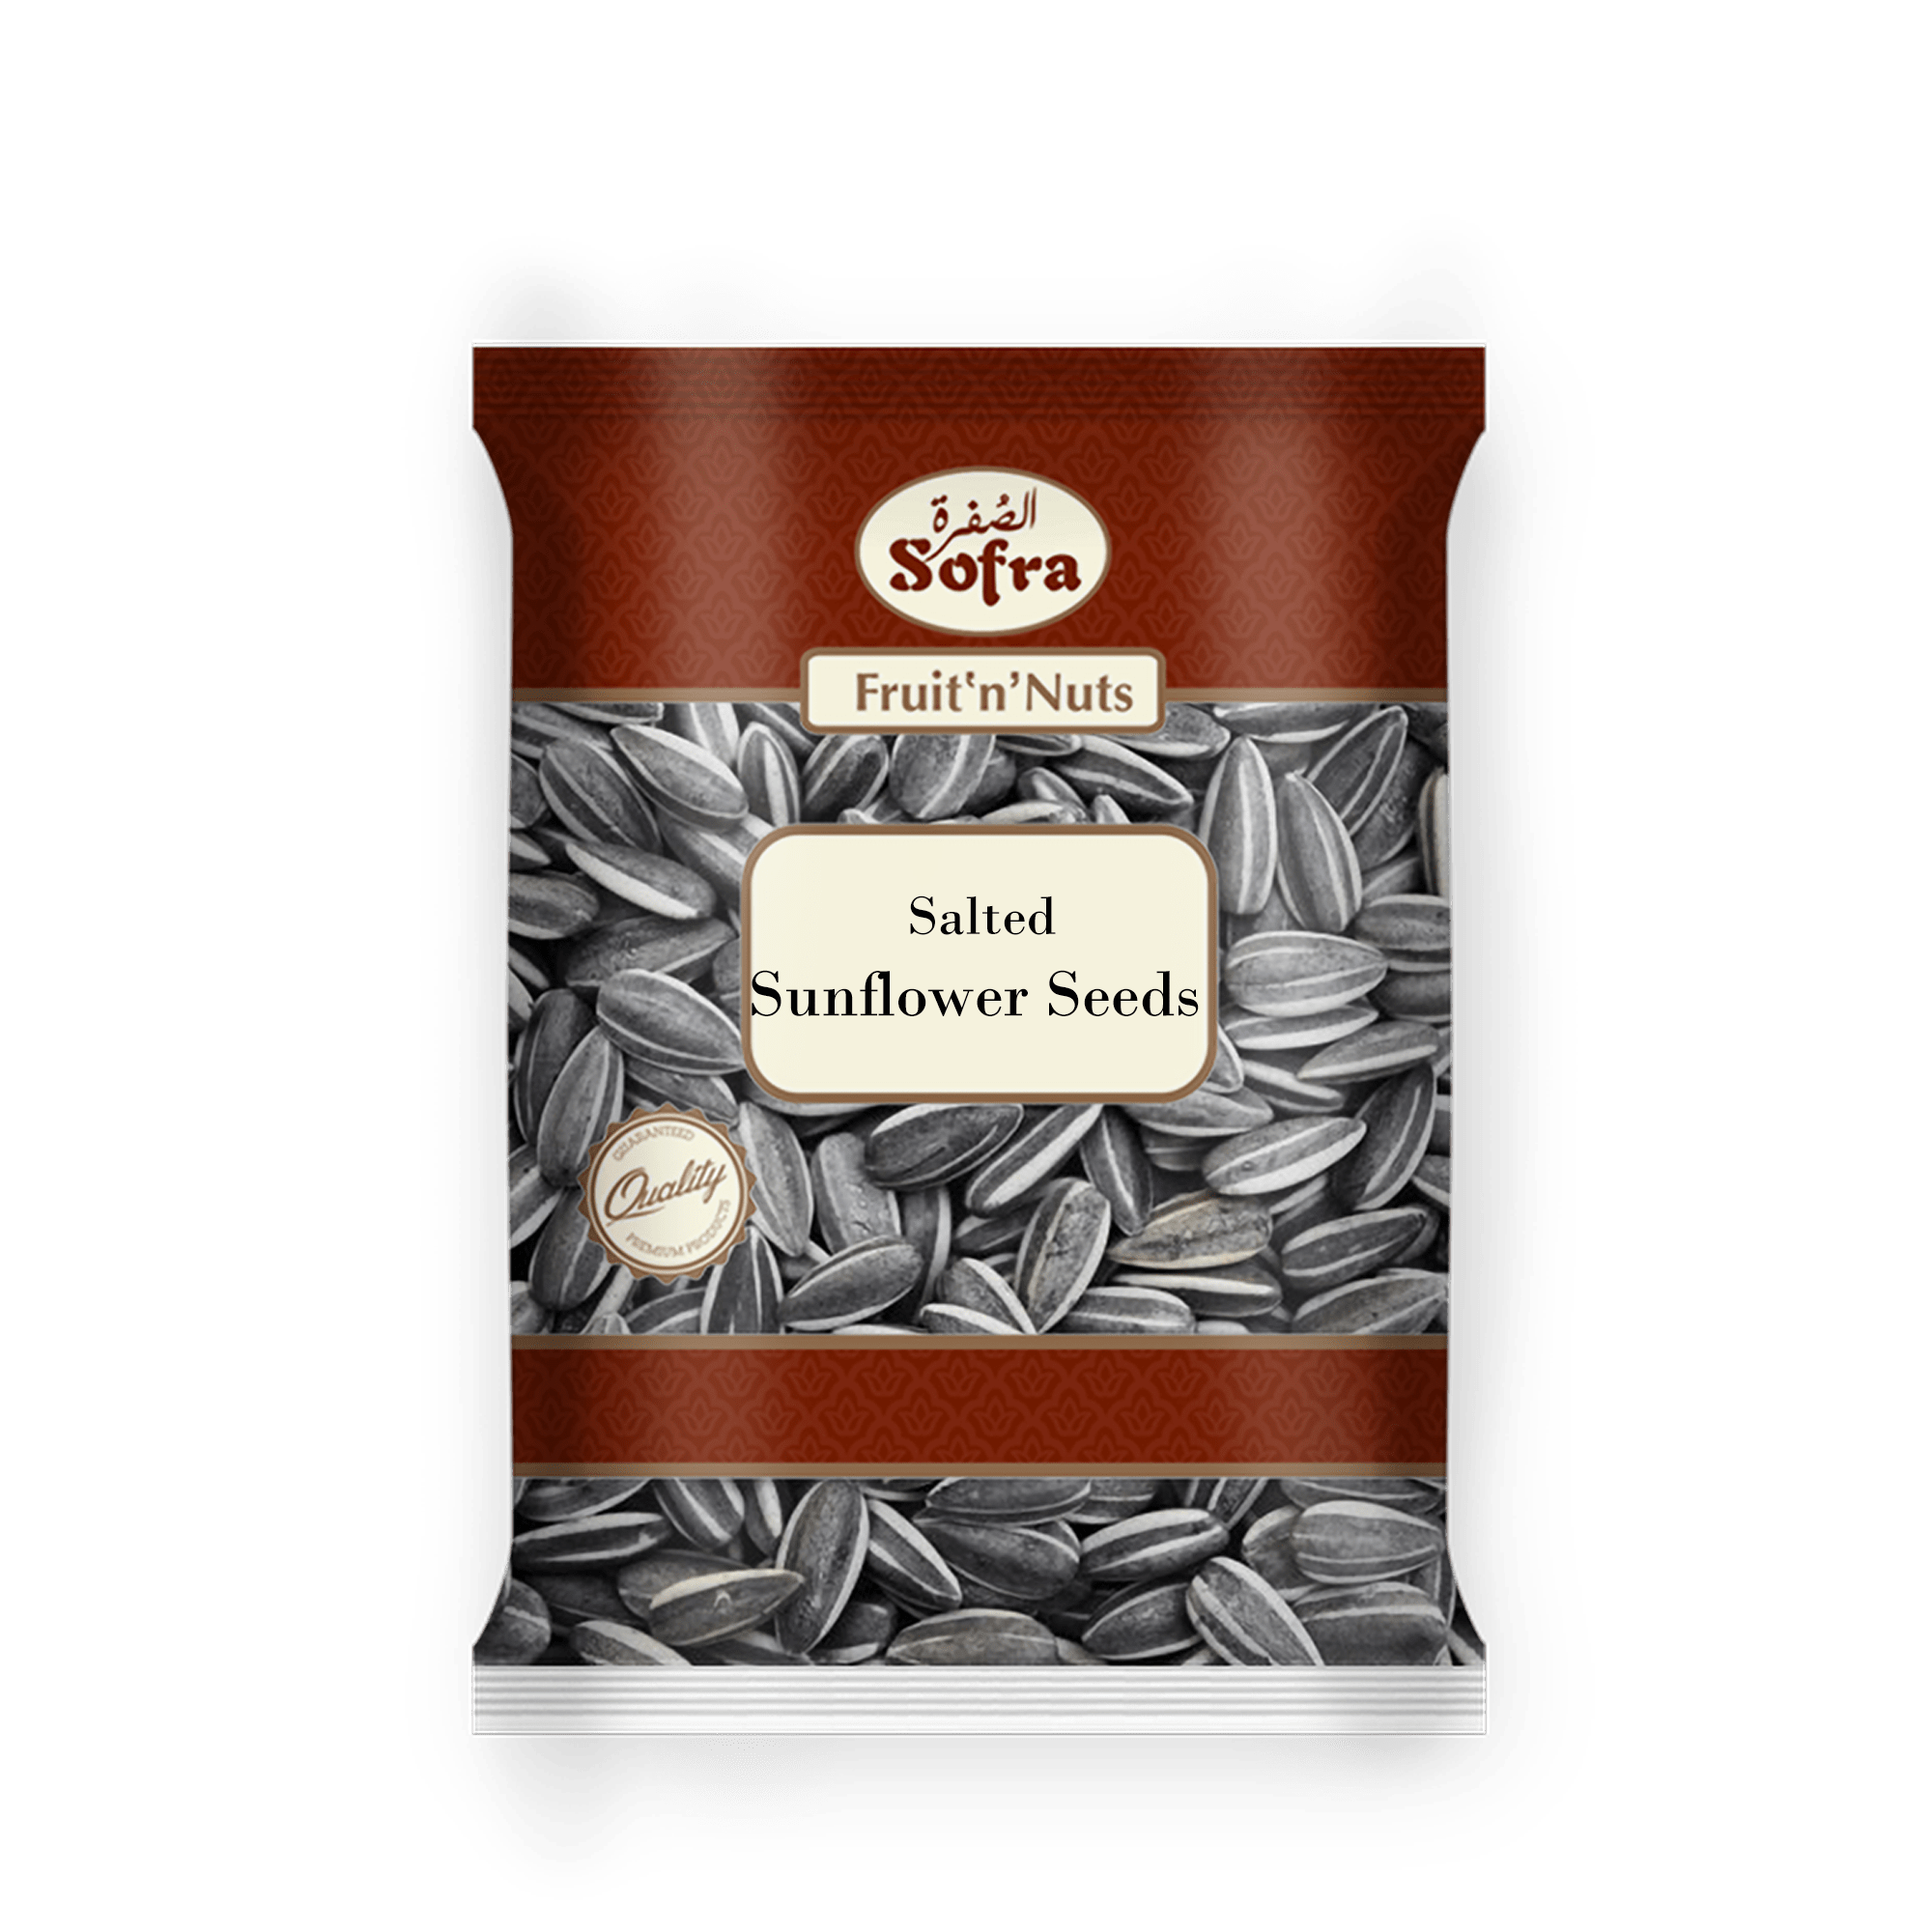 Sofra Fruit n Nuts Salted Sunflower Seeds